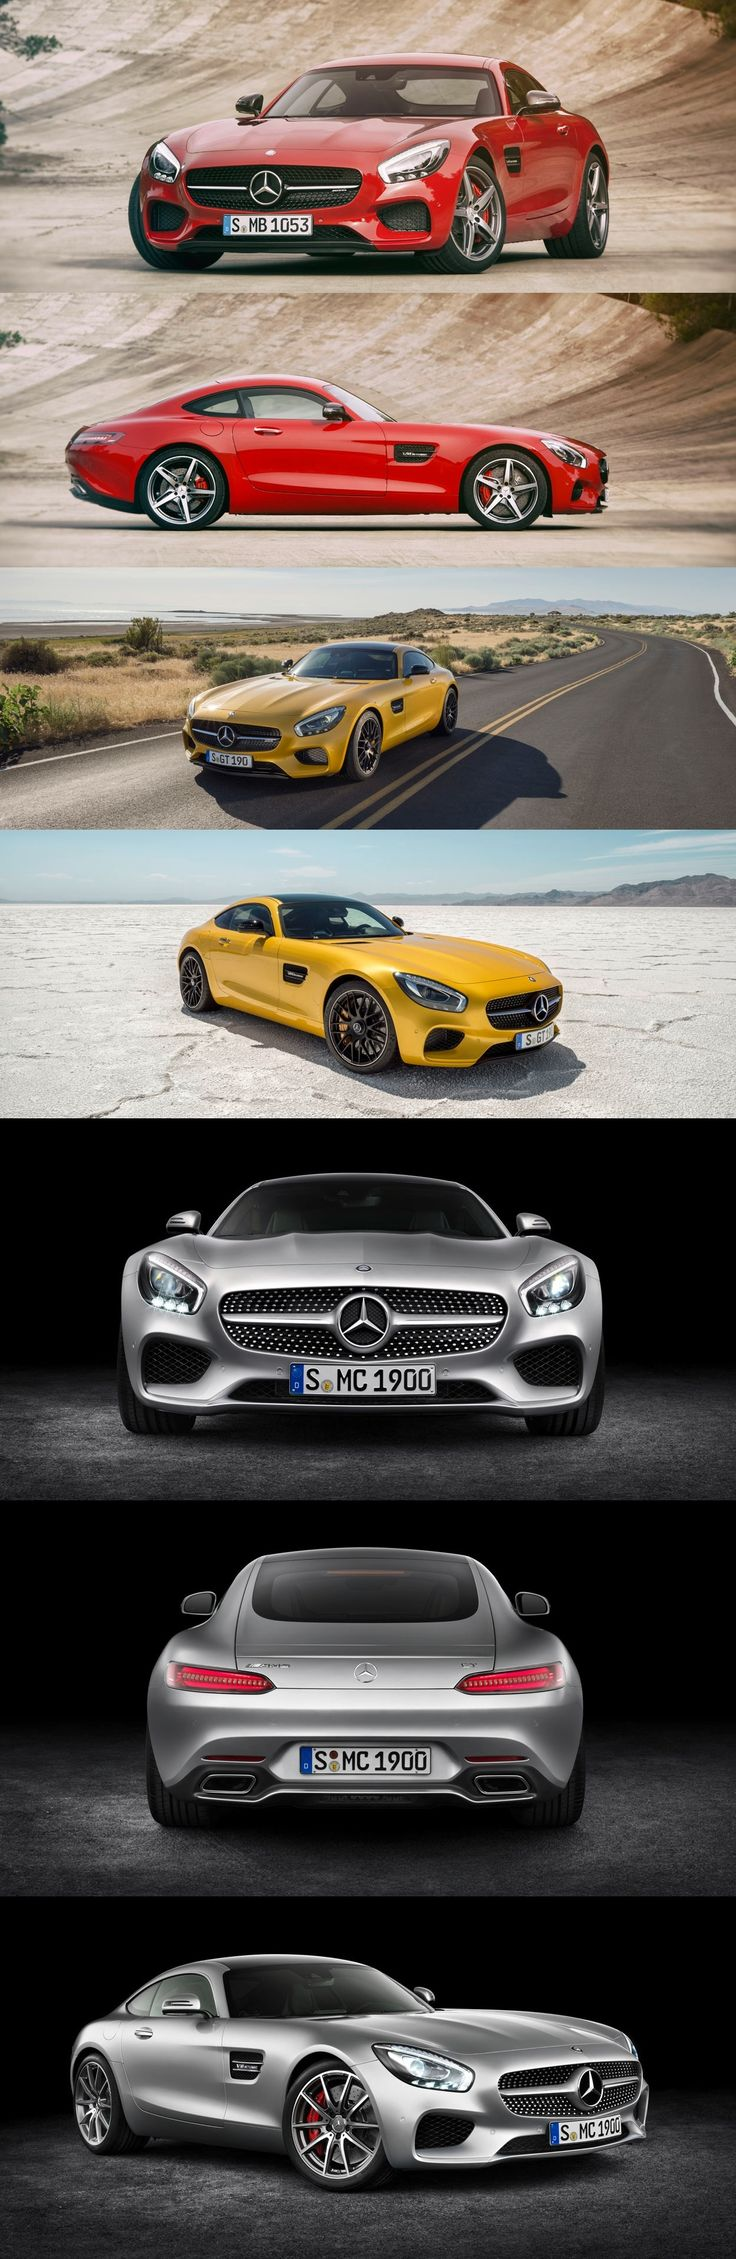 2016 Mercedes-Benz AMG GT  [Combined fuel consumption: 9.3 l/100 km  CO2 emission: 216 g/km | http://amg4.me/Efficiency-Statement]